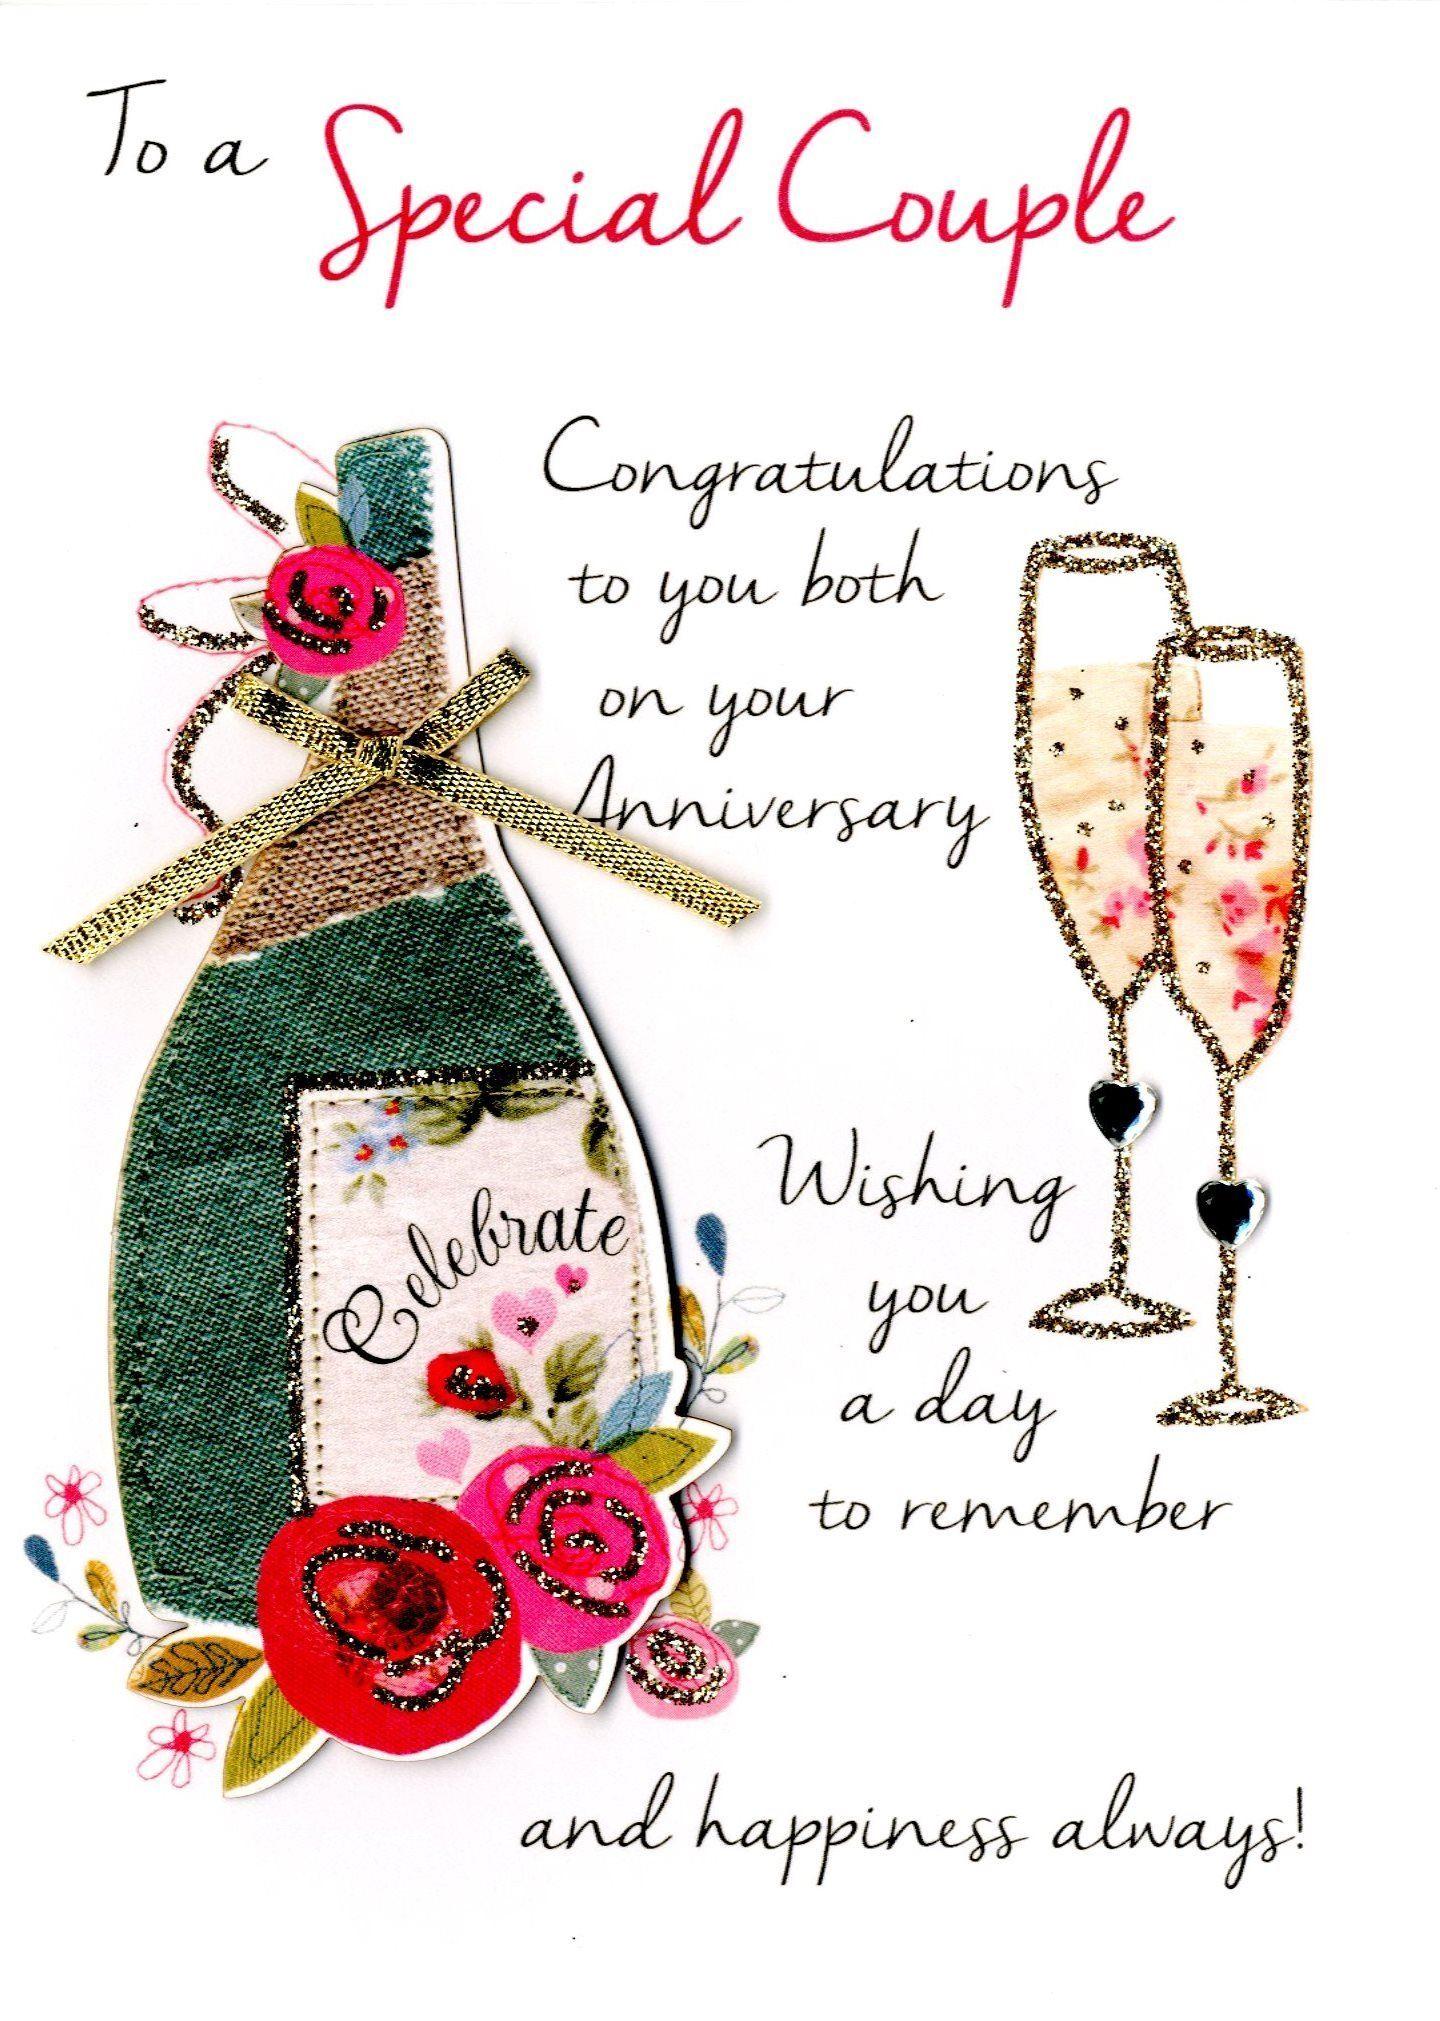 Special Couple Anniversary Greeting Card Happy Wedding Anniversary Wishes C Happy Anniversary Funny Happy Wedding Anniversary Wishes Happy Marriage Anniversary